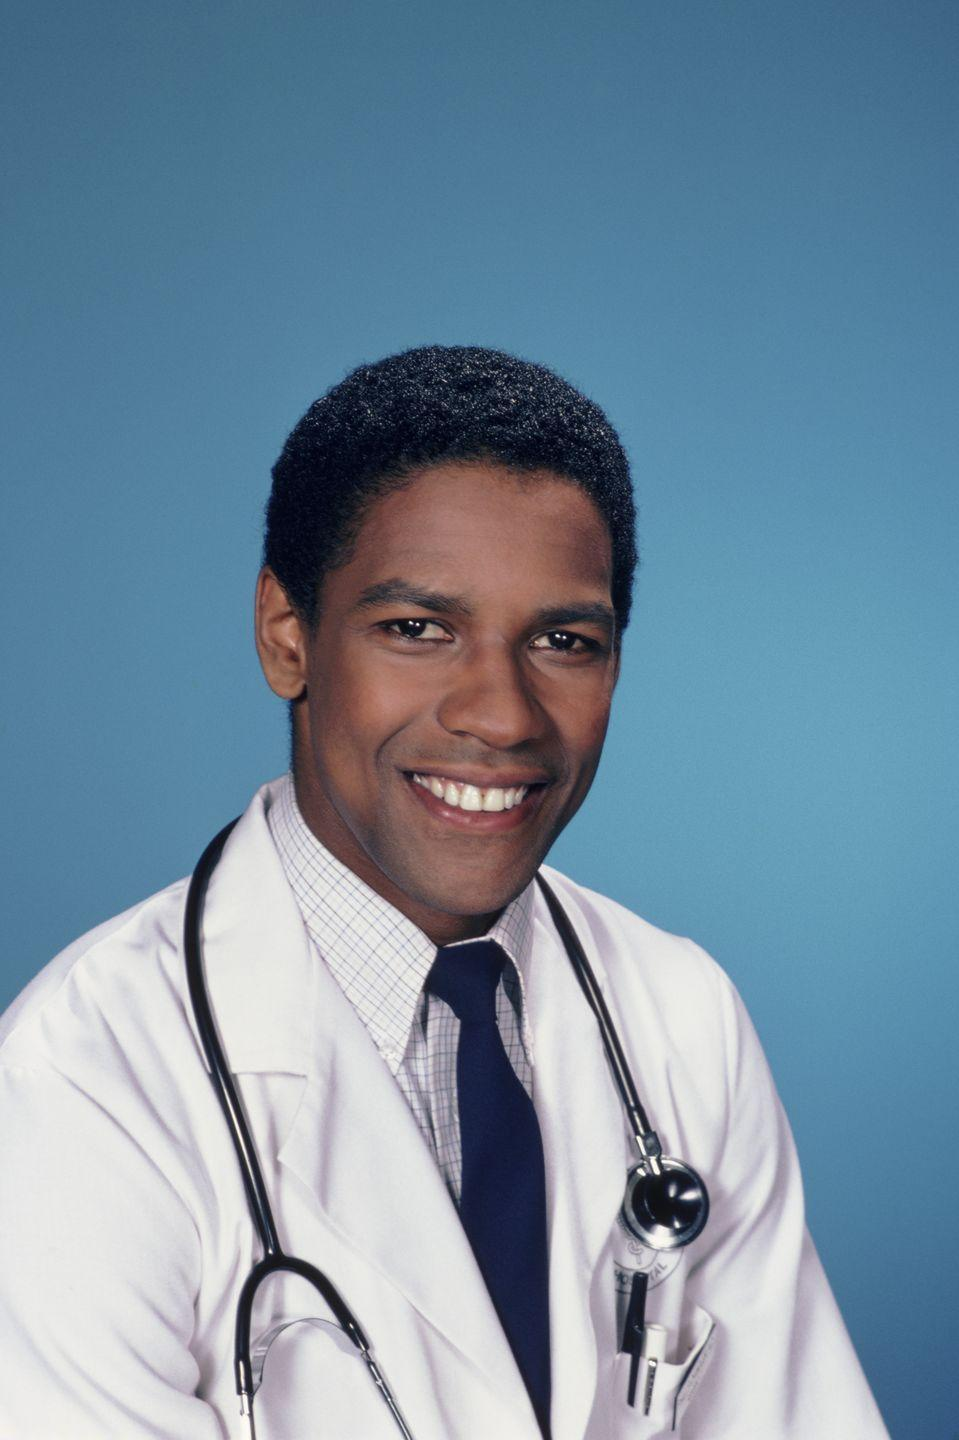 <p>Washington's big break came in the '80s, when he starred as Dr. Phillip Chandler in NBC's hospital drama <em>St. Elsewhere.</em></p>